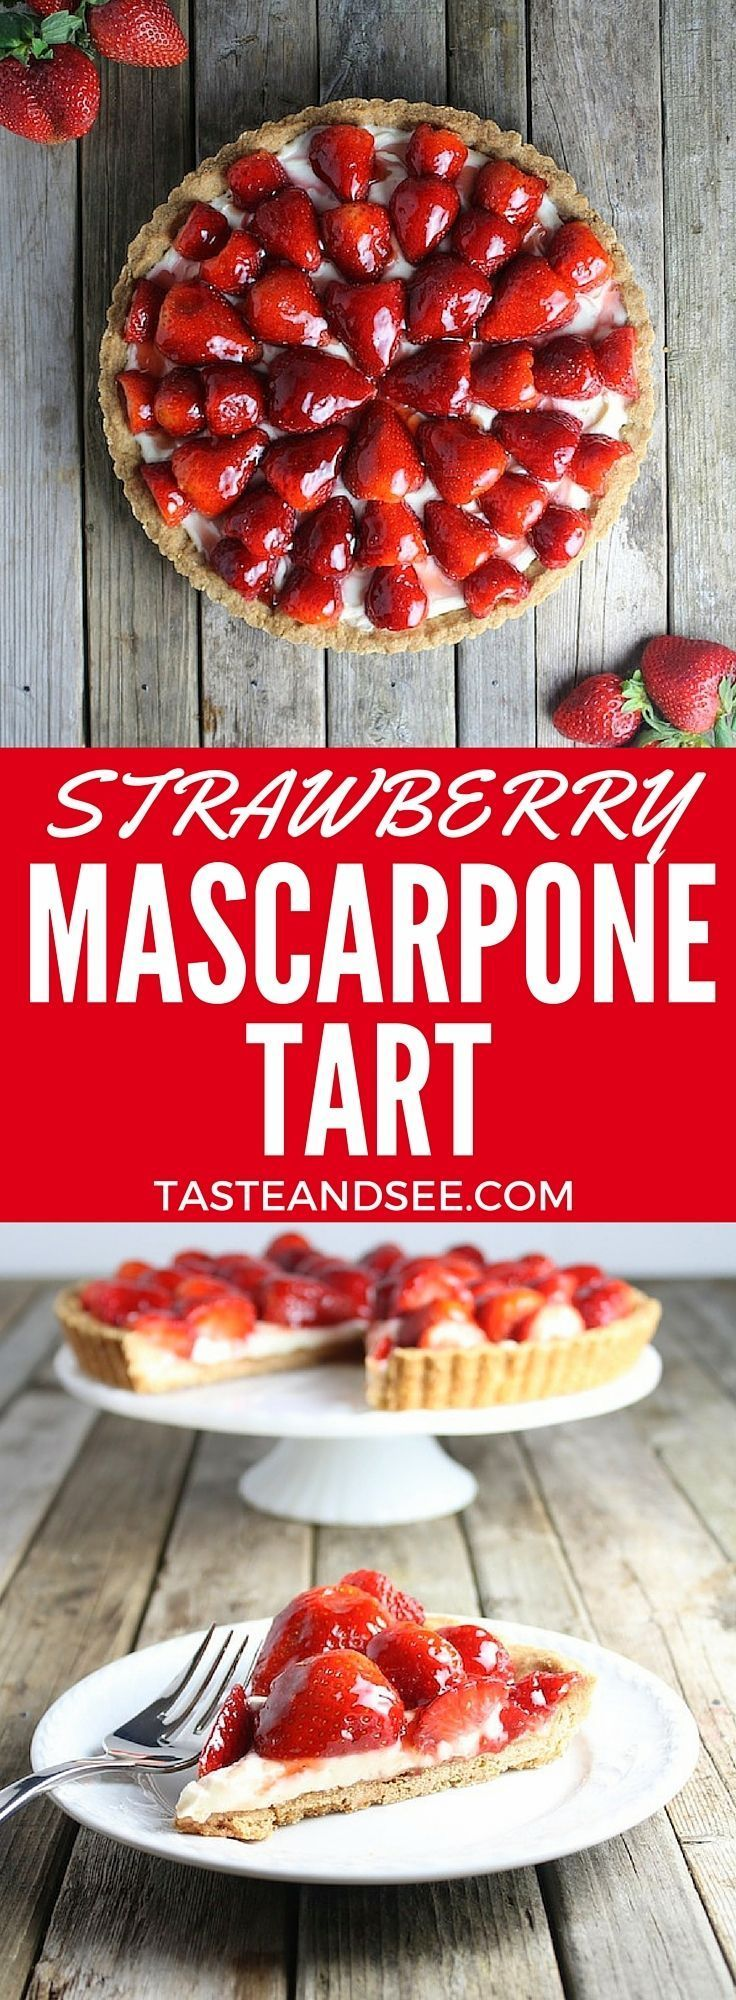 Beautiful & luscious Strawberry Mascarpone Tart.  Shortbread crust w/velvety mascarpone cheese mixture, topped w/glazed strawberries.  Creamy &  berry sweet - perfect dessert for #SundaySupper  | http://tasteandsee.com